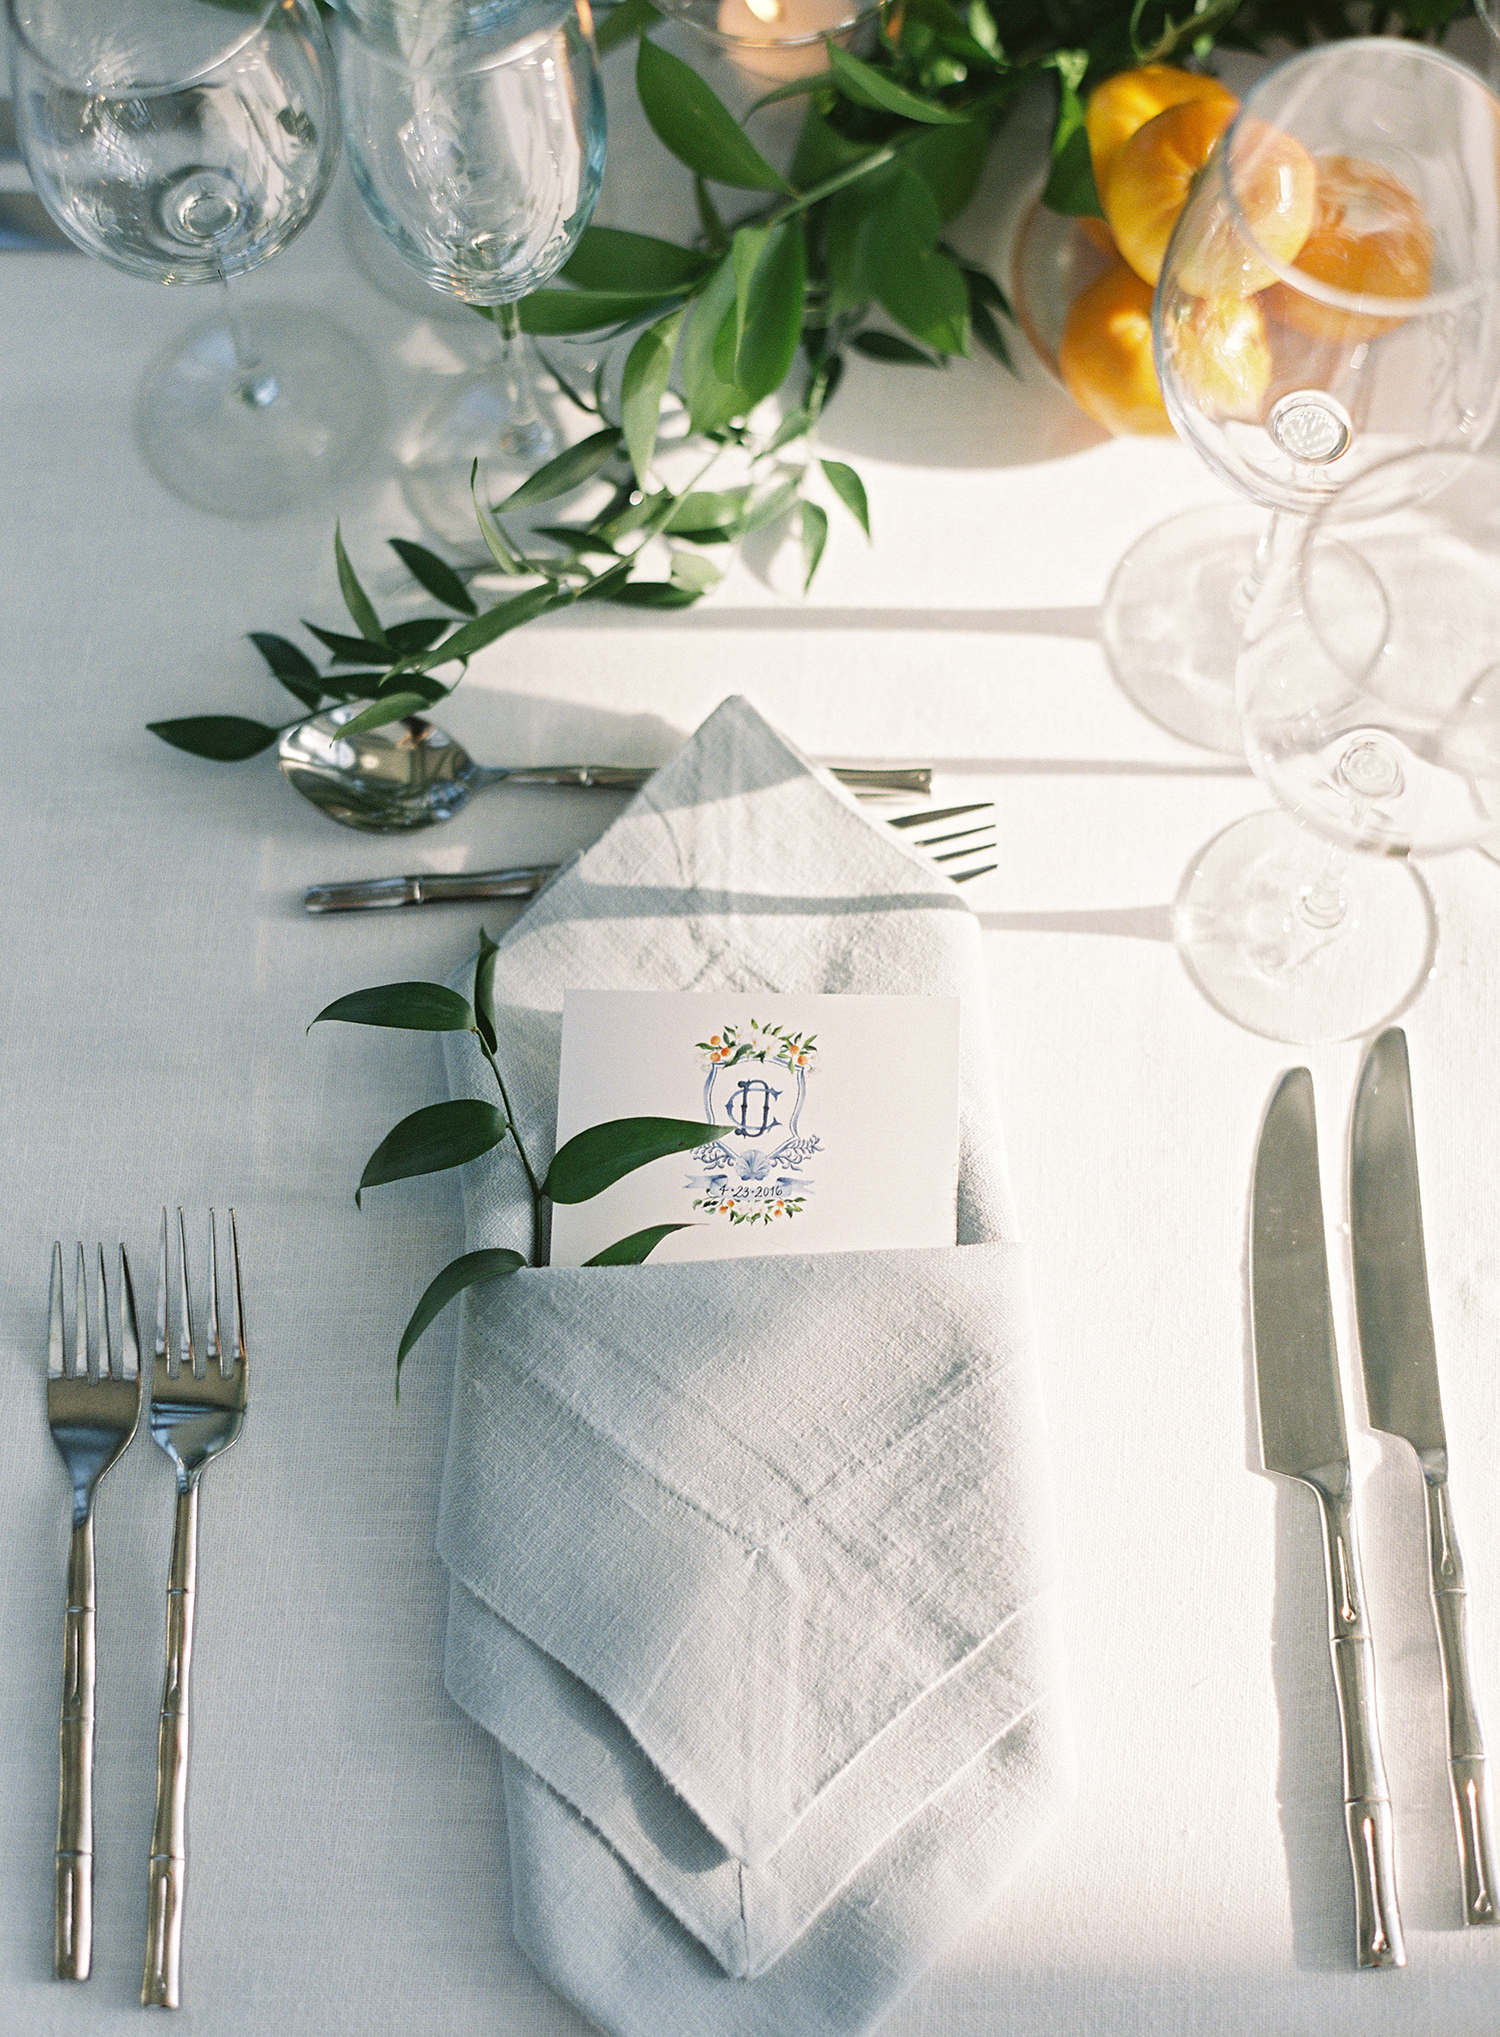 cat denis wedding place setting